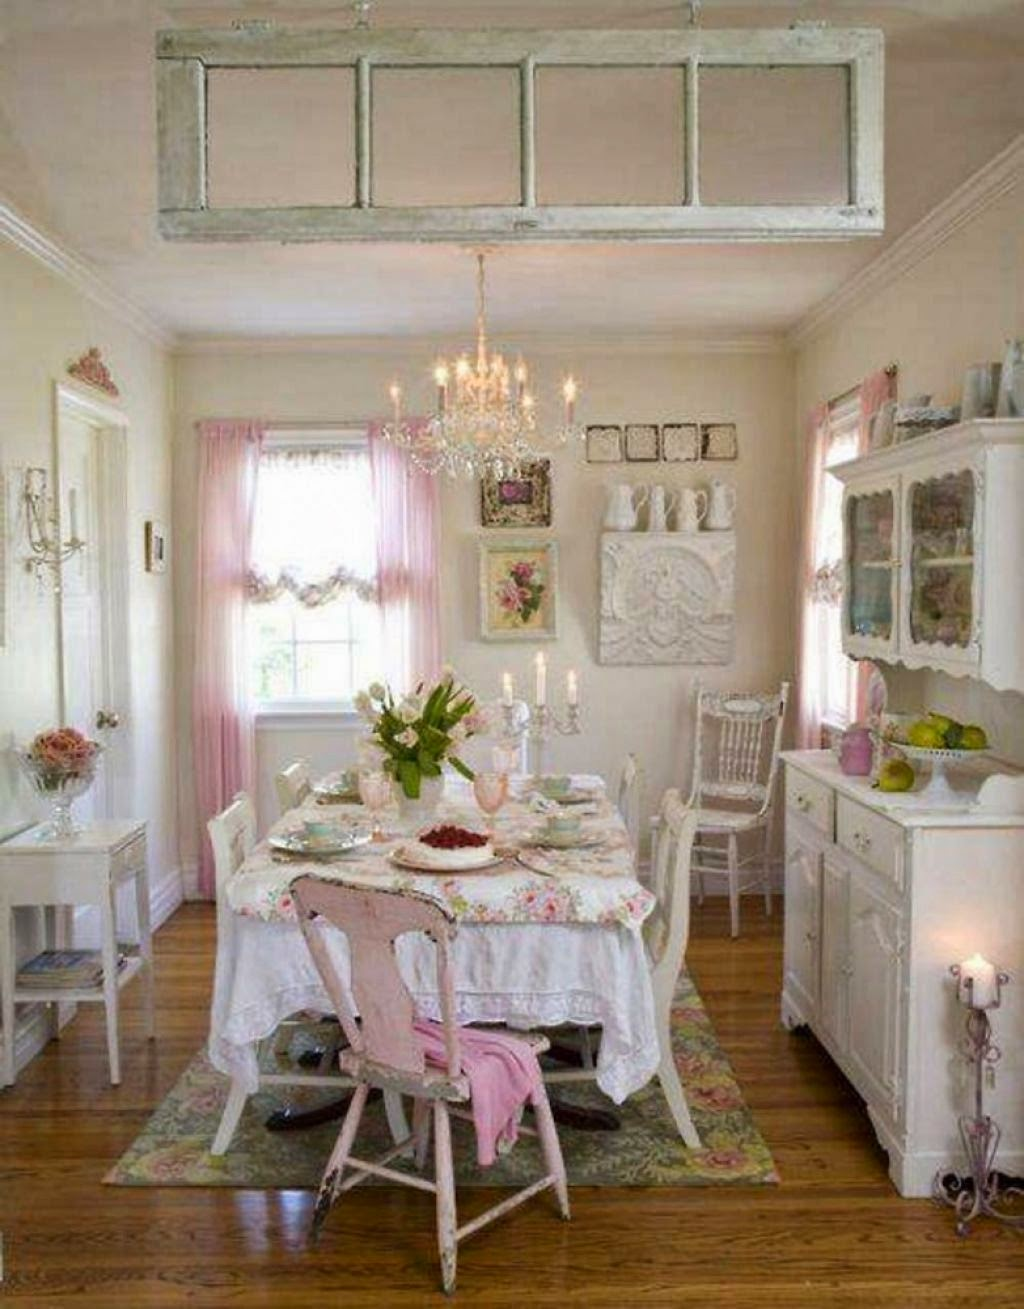 Shabby Chic Muebles Mueblesdecocina Shabby Chic26 Muebles De Cocina Balt Chile